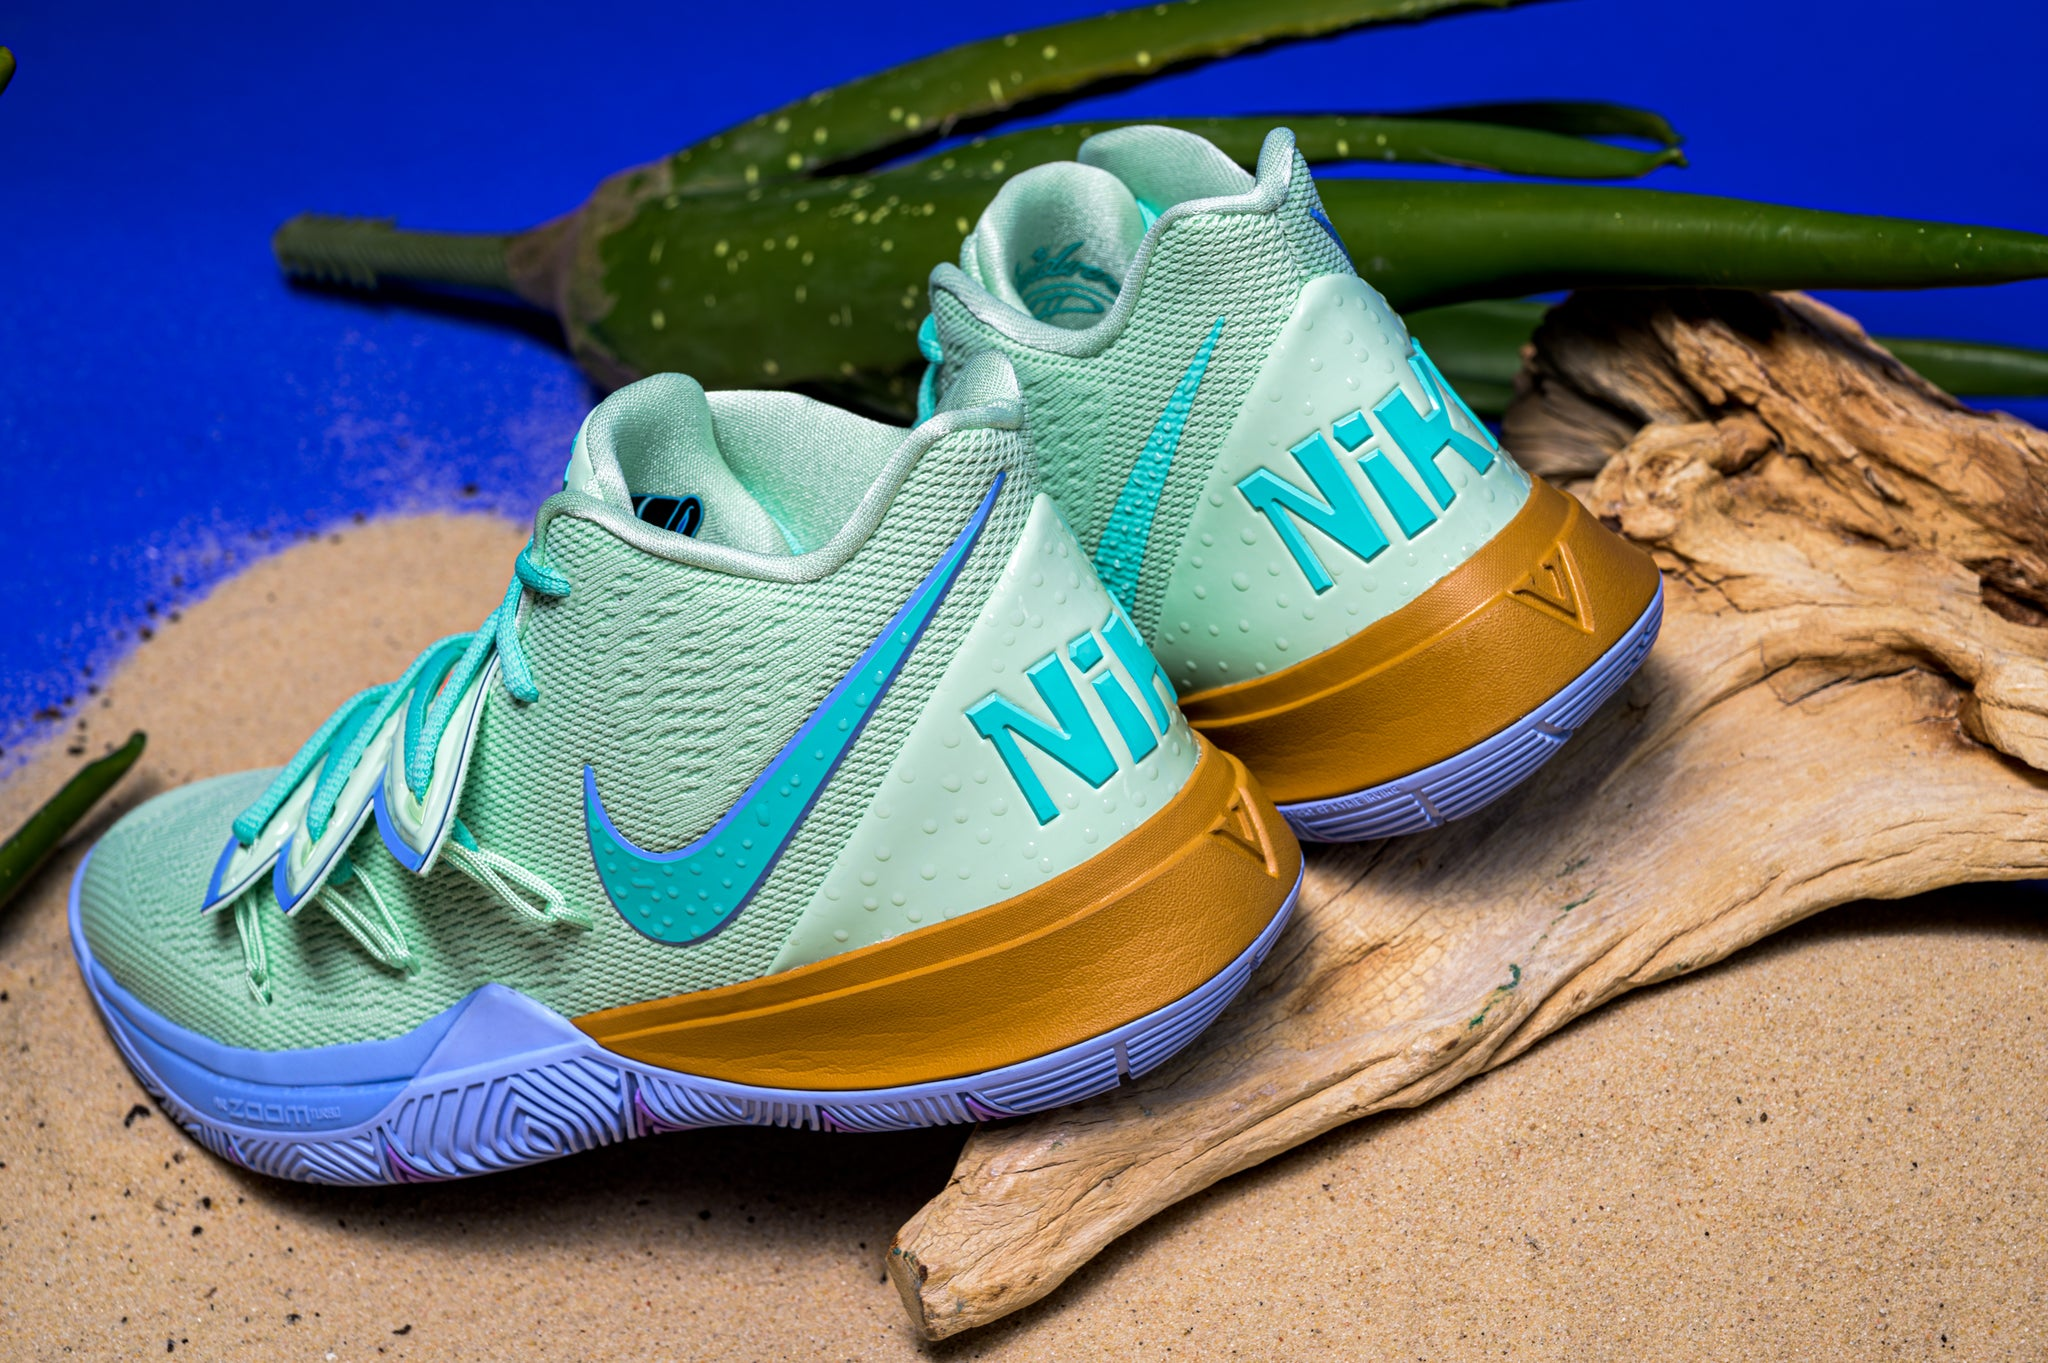 Nike Kyrie 5 x Spongebob Collection , Sneaker Politics